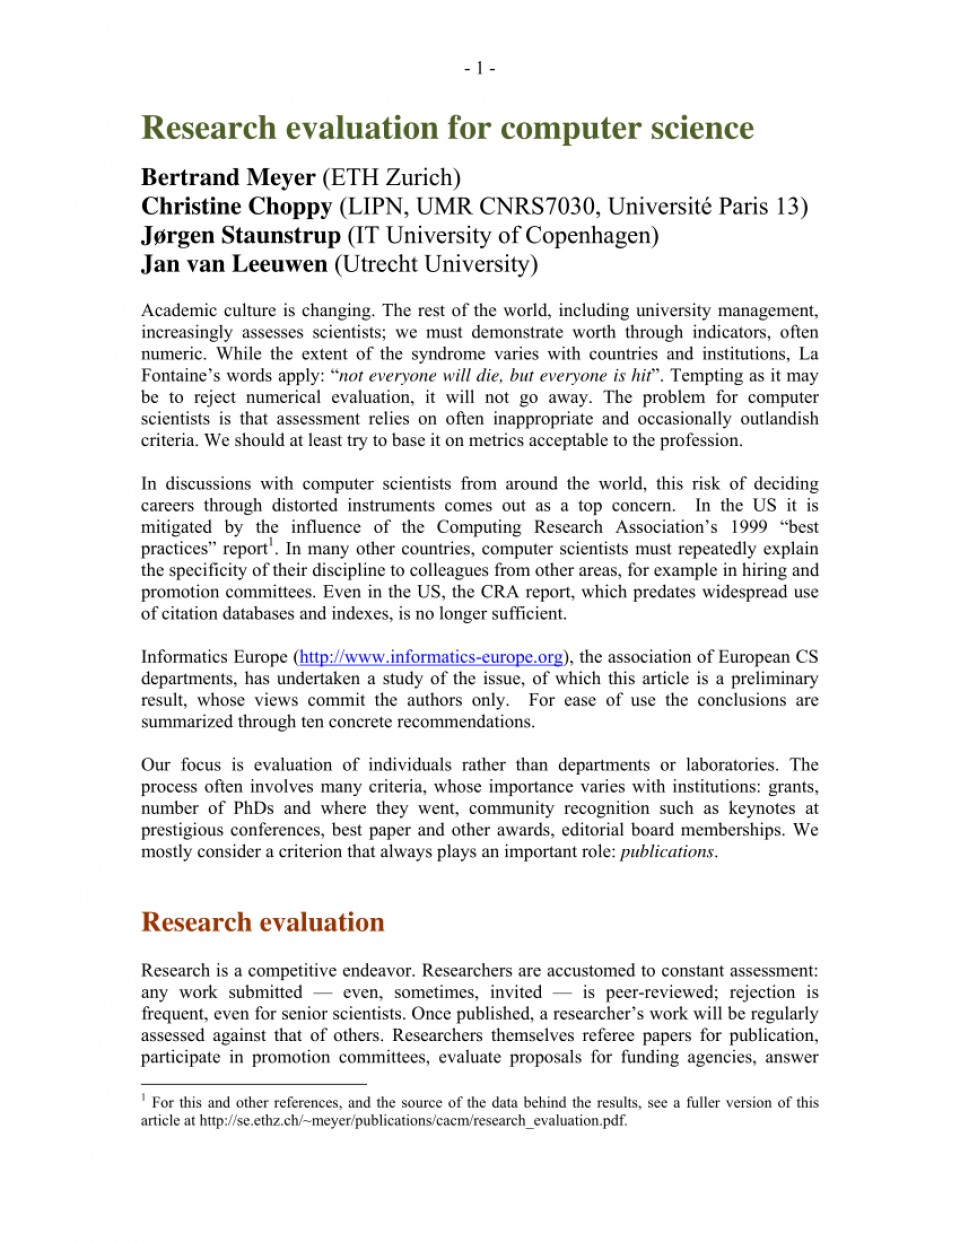 004 Largepreview Published Research Breathtaking Paper About Bullying Papers In Artificial Intelligence Mathematics 960